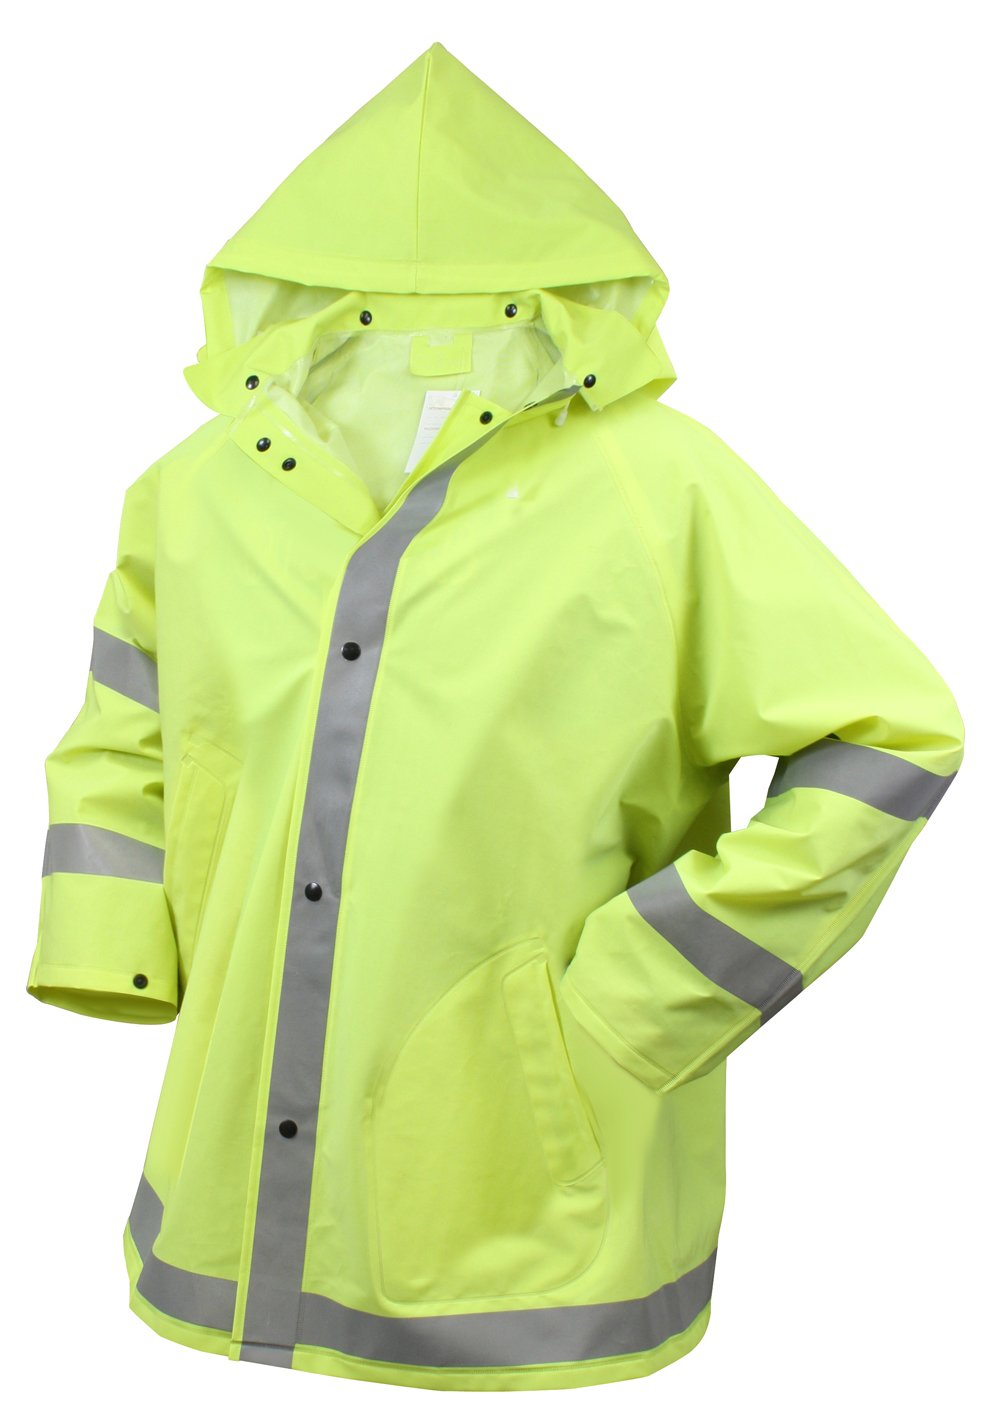 Rothco Reflective Rain Jacket, Safety Green, X-Large by Rothco (Image #1)